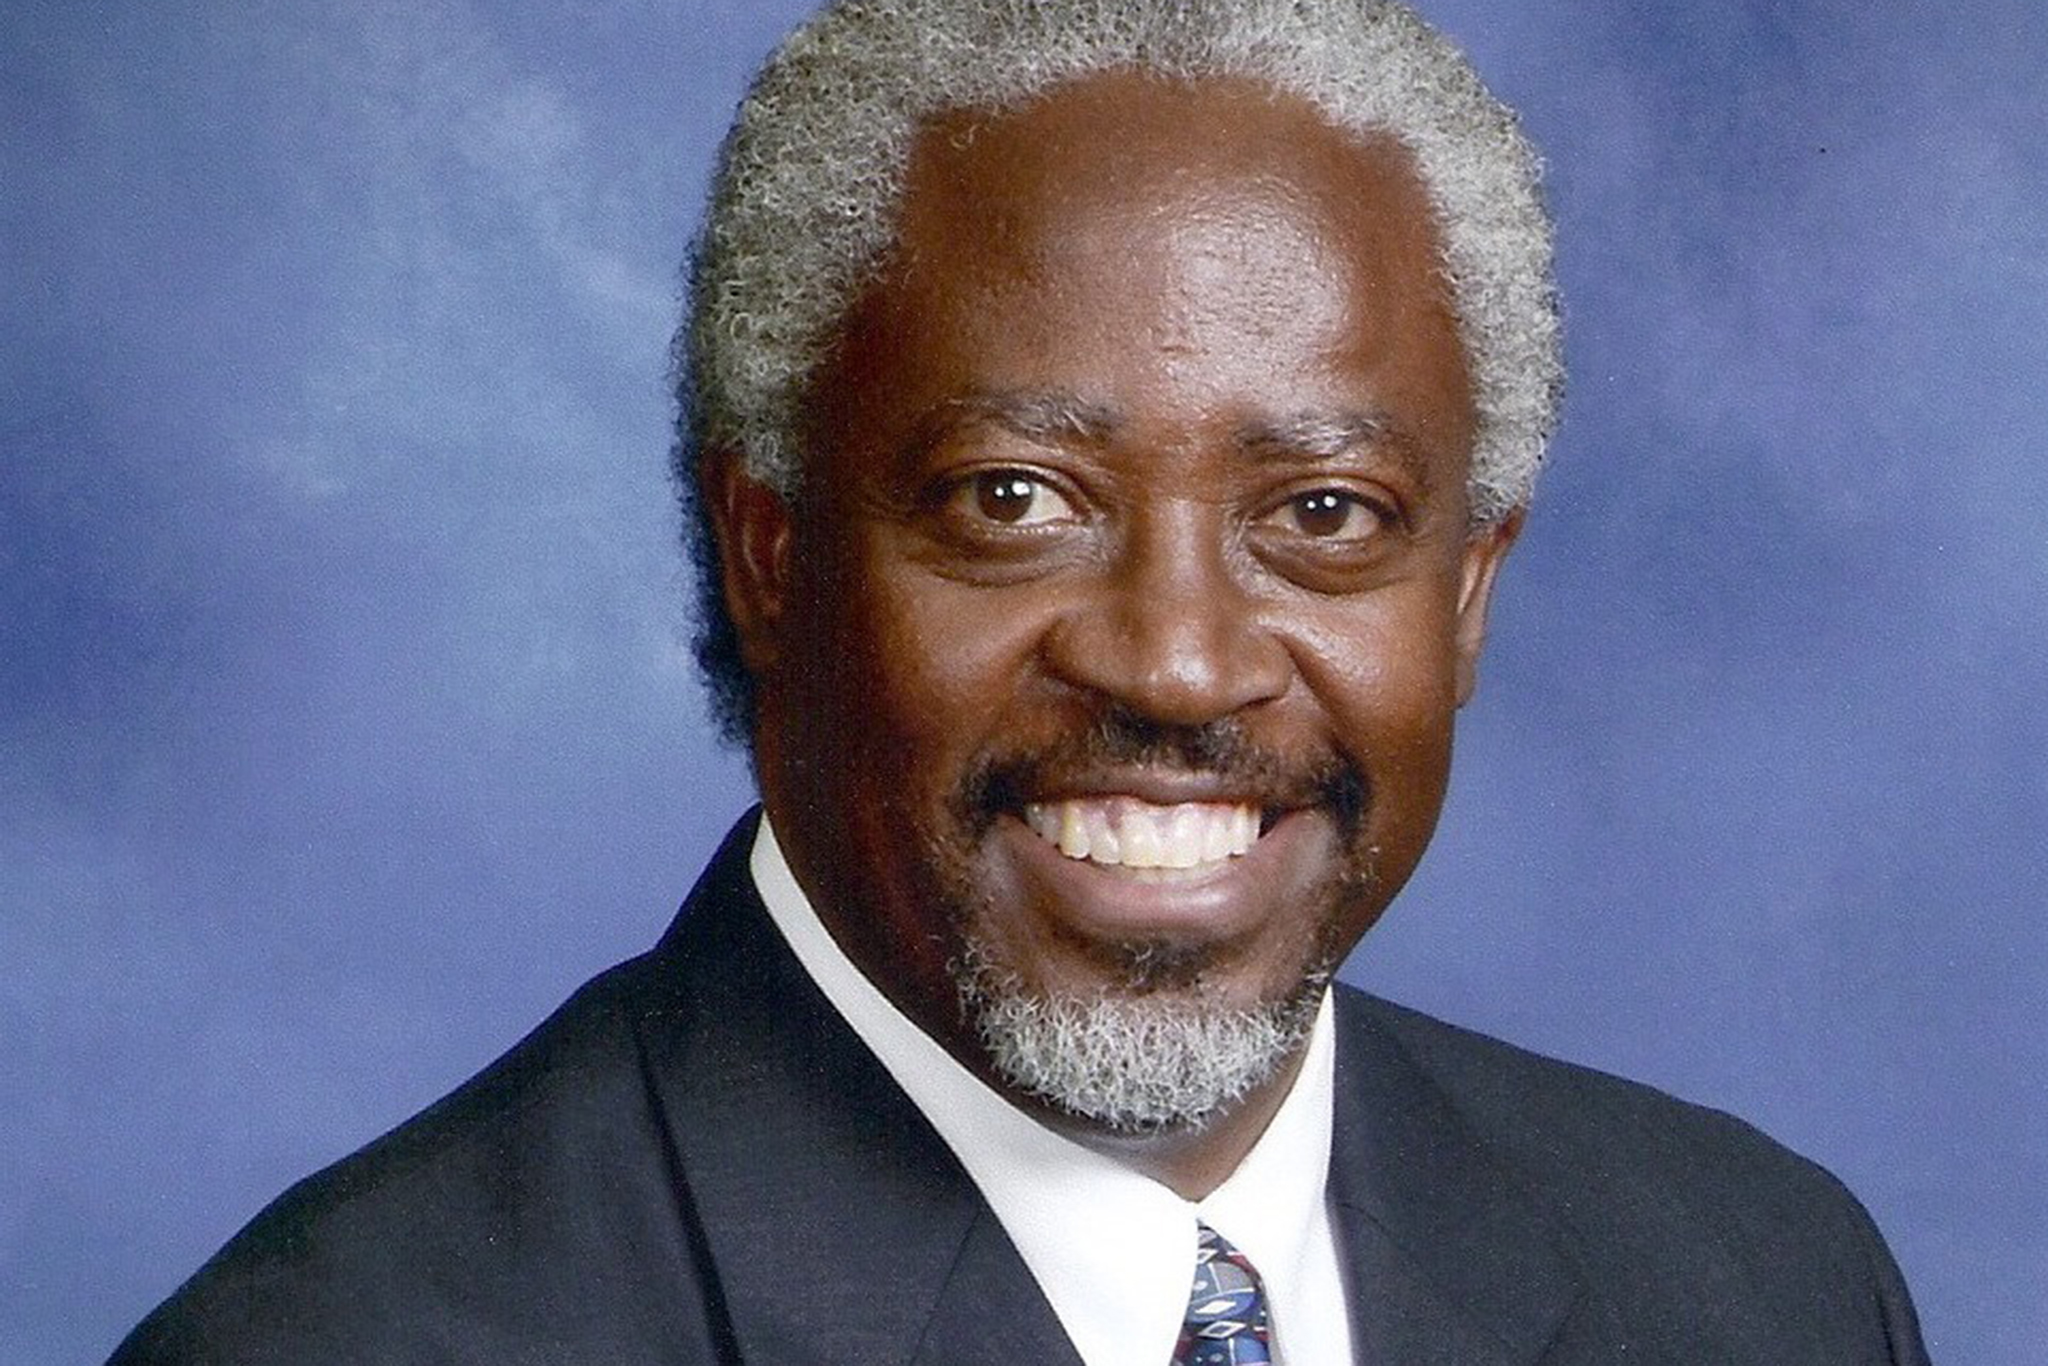 SBC Could Elect California Pastor Rolland Slade as First Black Chairman of Its Executive Committee